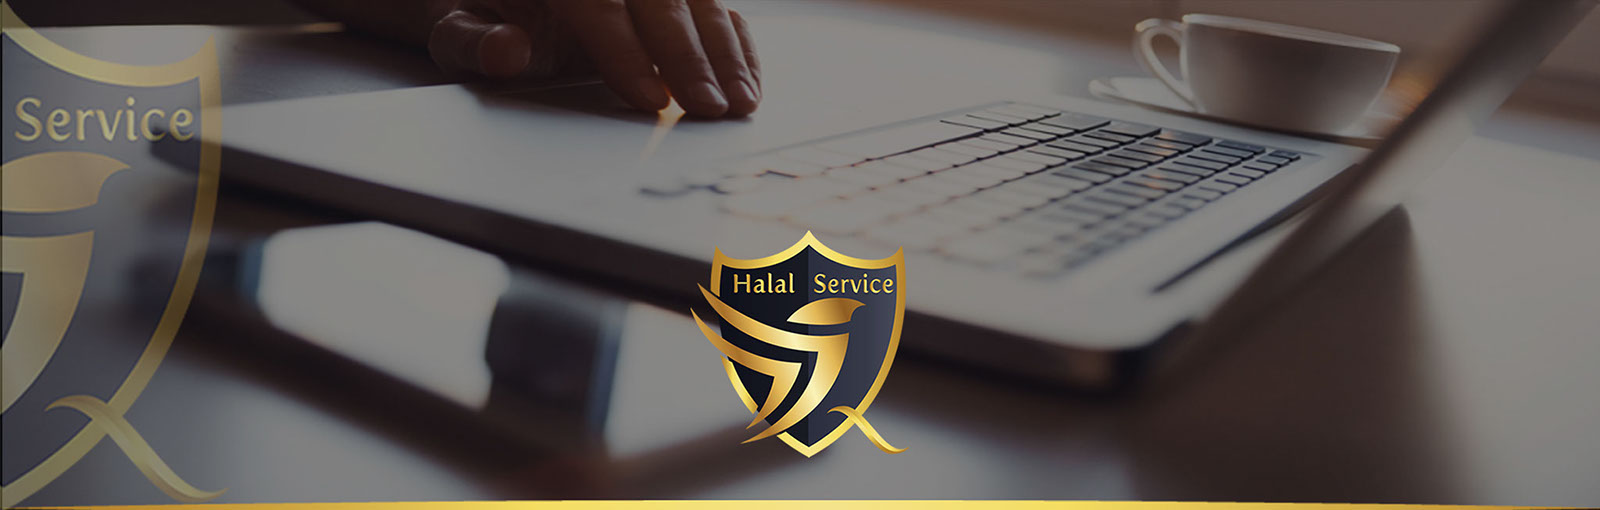 Contacts. HALAL SERVICE - HS. quotes, information, urgencies, 24/24, Halal Service number, Email Halal Service